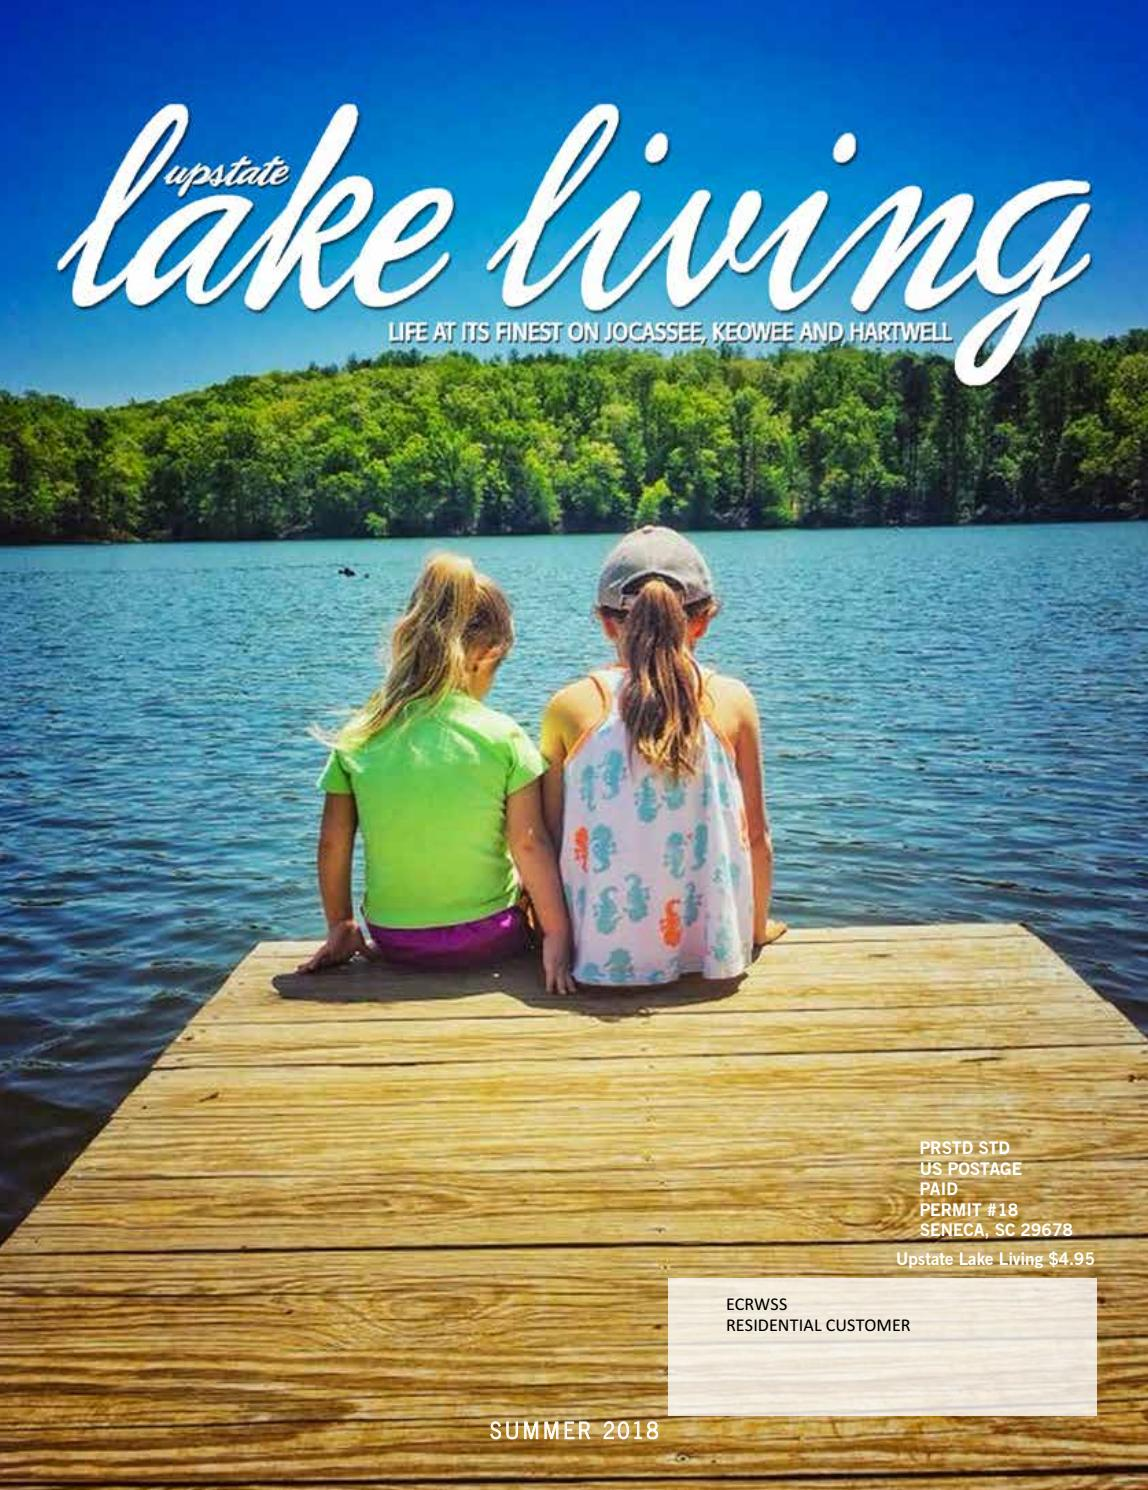 Upstate Lake Living Summer 2018 by EDWARDS PUBLICATIONS - issuu